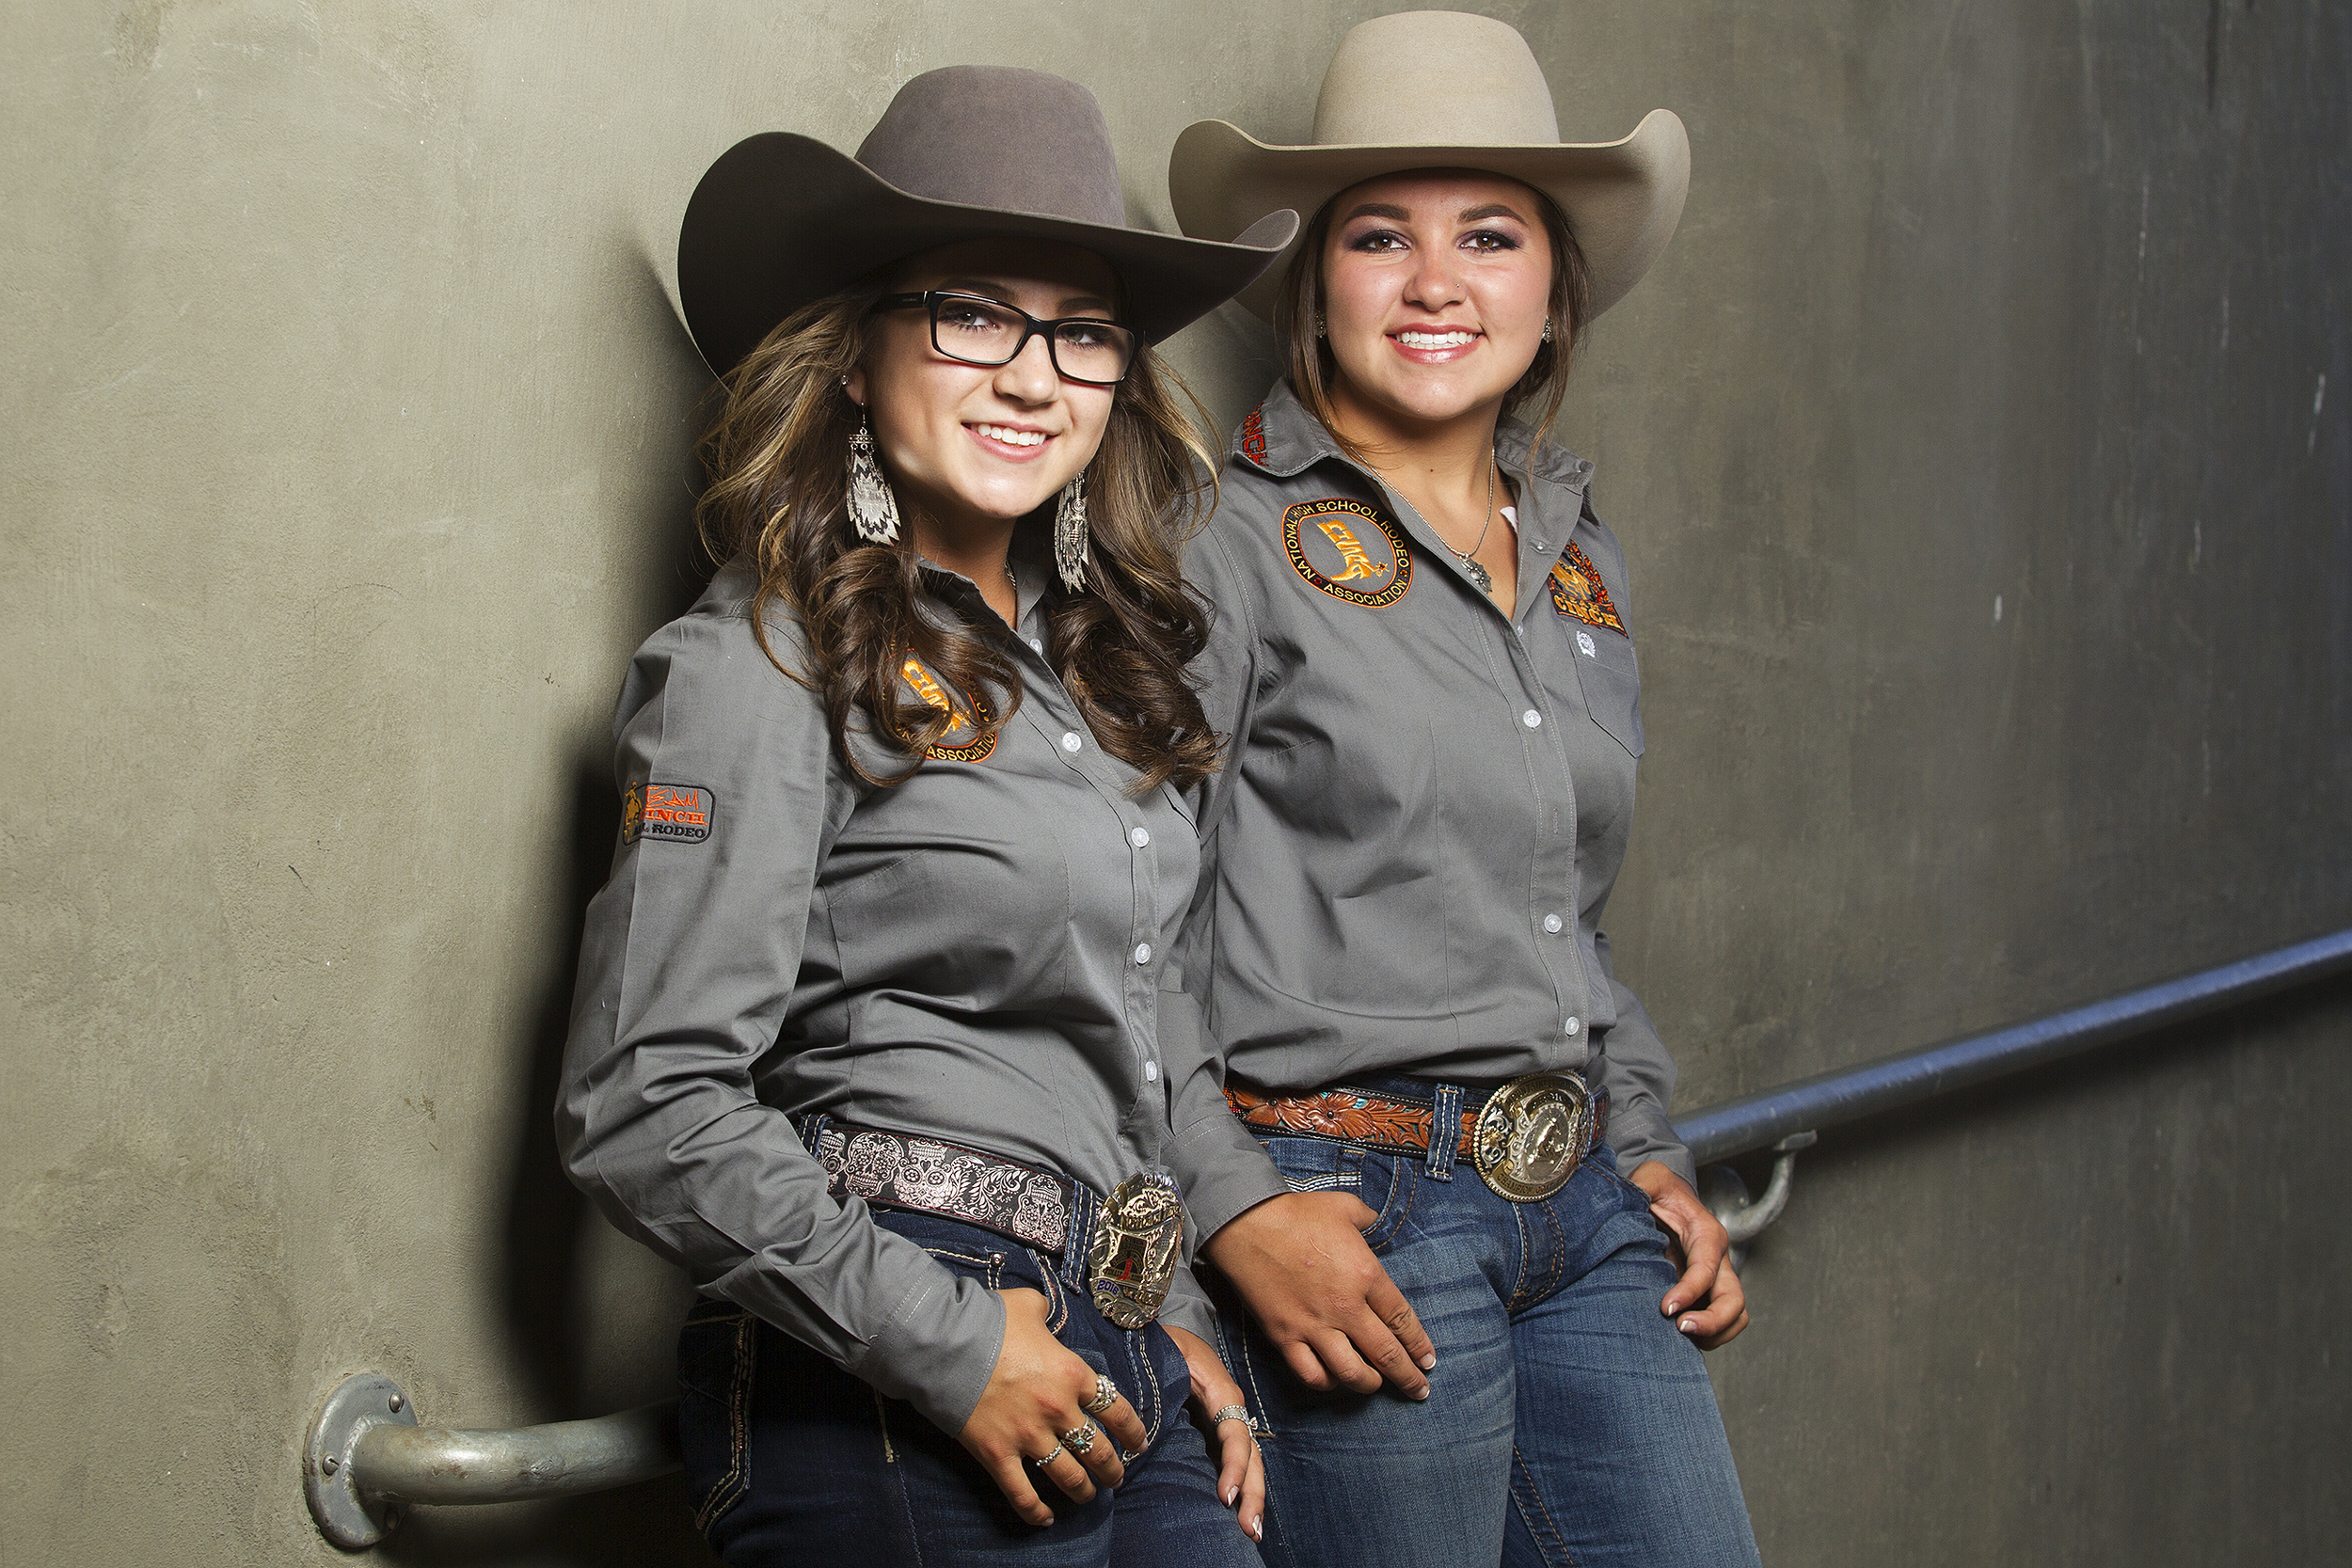 Madison, left, and Miranda Iager are running for president and vice president of the National High School Rodeo Associations student officers. Together the pair qualified for five events at the 2016 National High School Finals Rodeo.